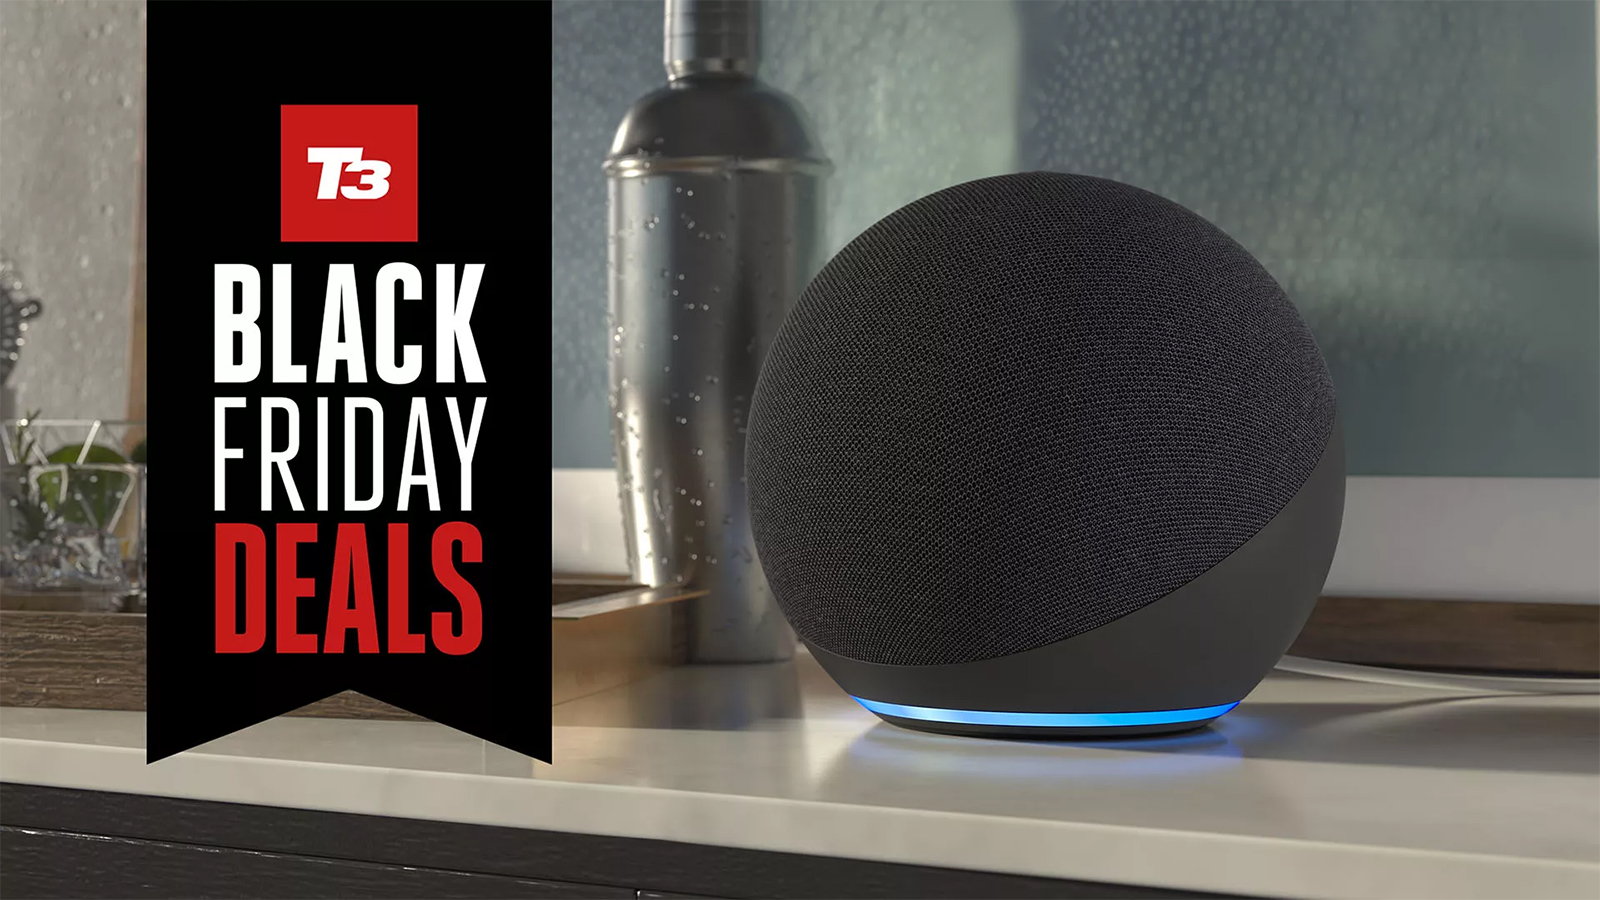 Black Friday Deals In Canada 2020 The Top Black Friday Deals So Far At Amazon Ca London Drugs And More T3